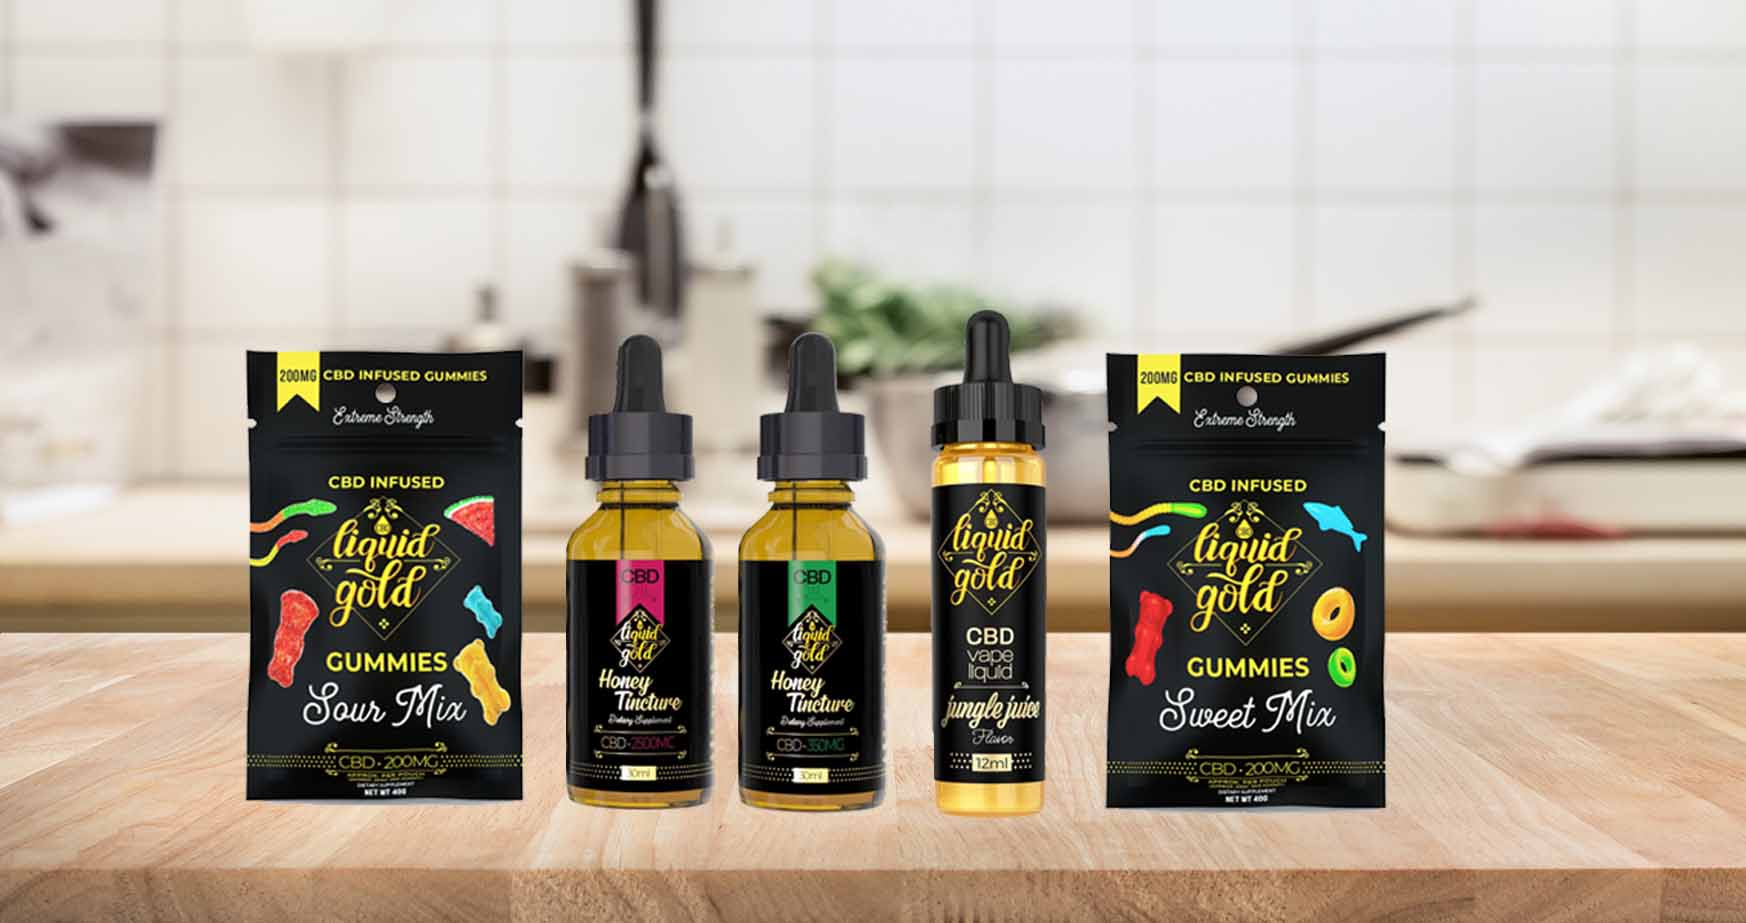 Liquid Gold CBD oil products